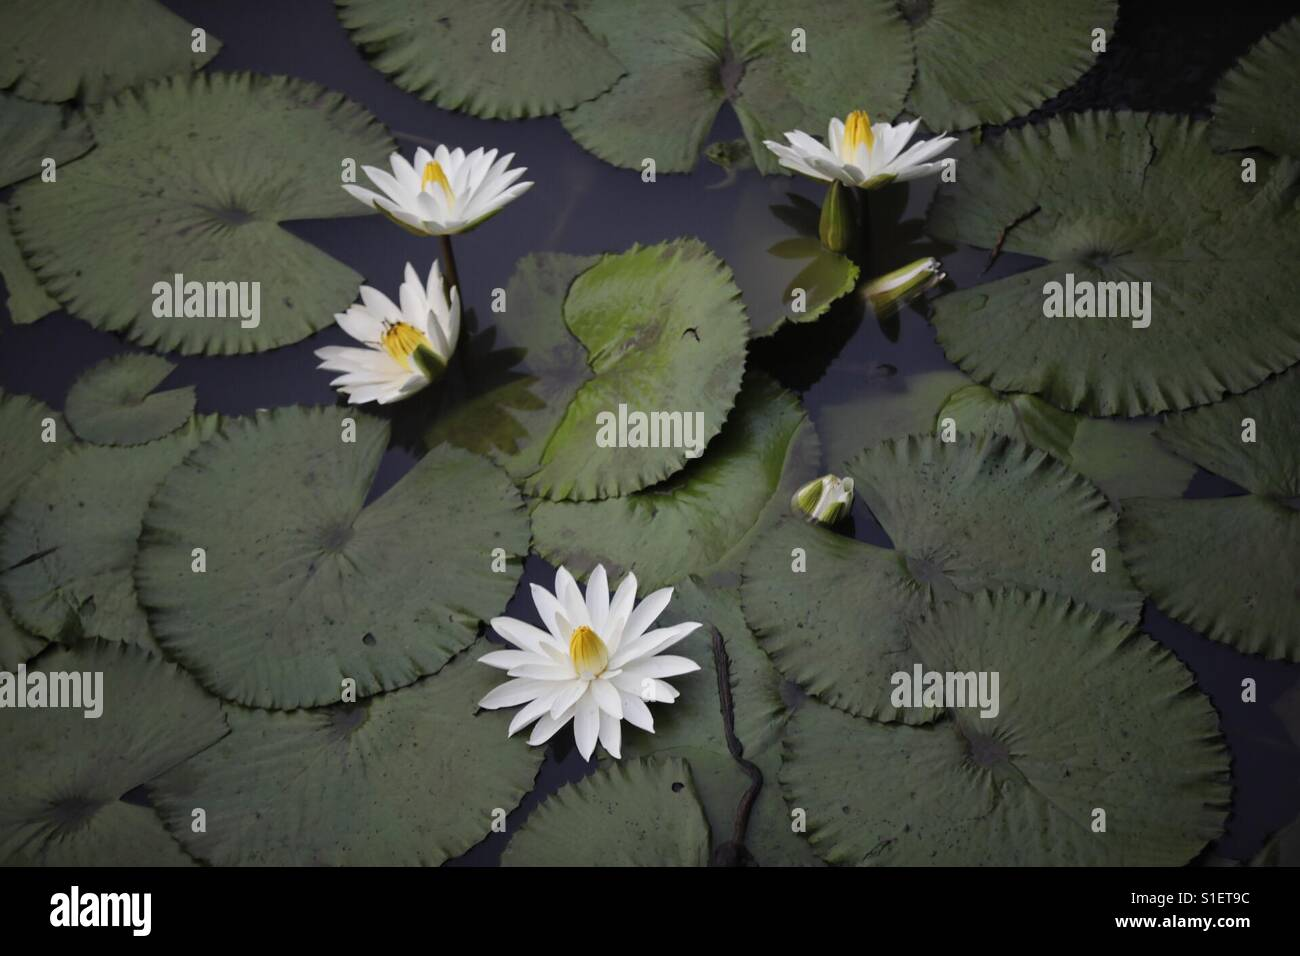 Lotus flower buy stock photos lotus flower buy stock images alamy rare white lotus blooming in a pond stock image mightylinksfo